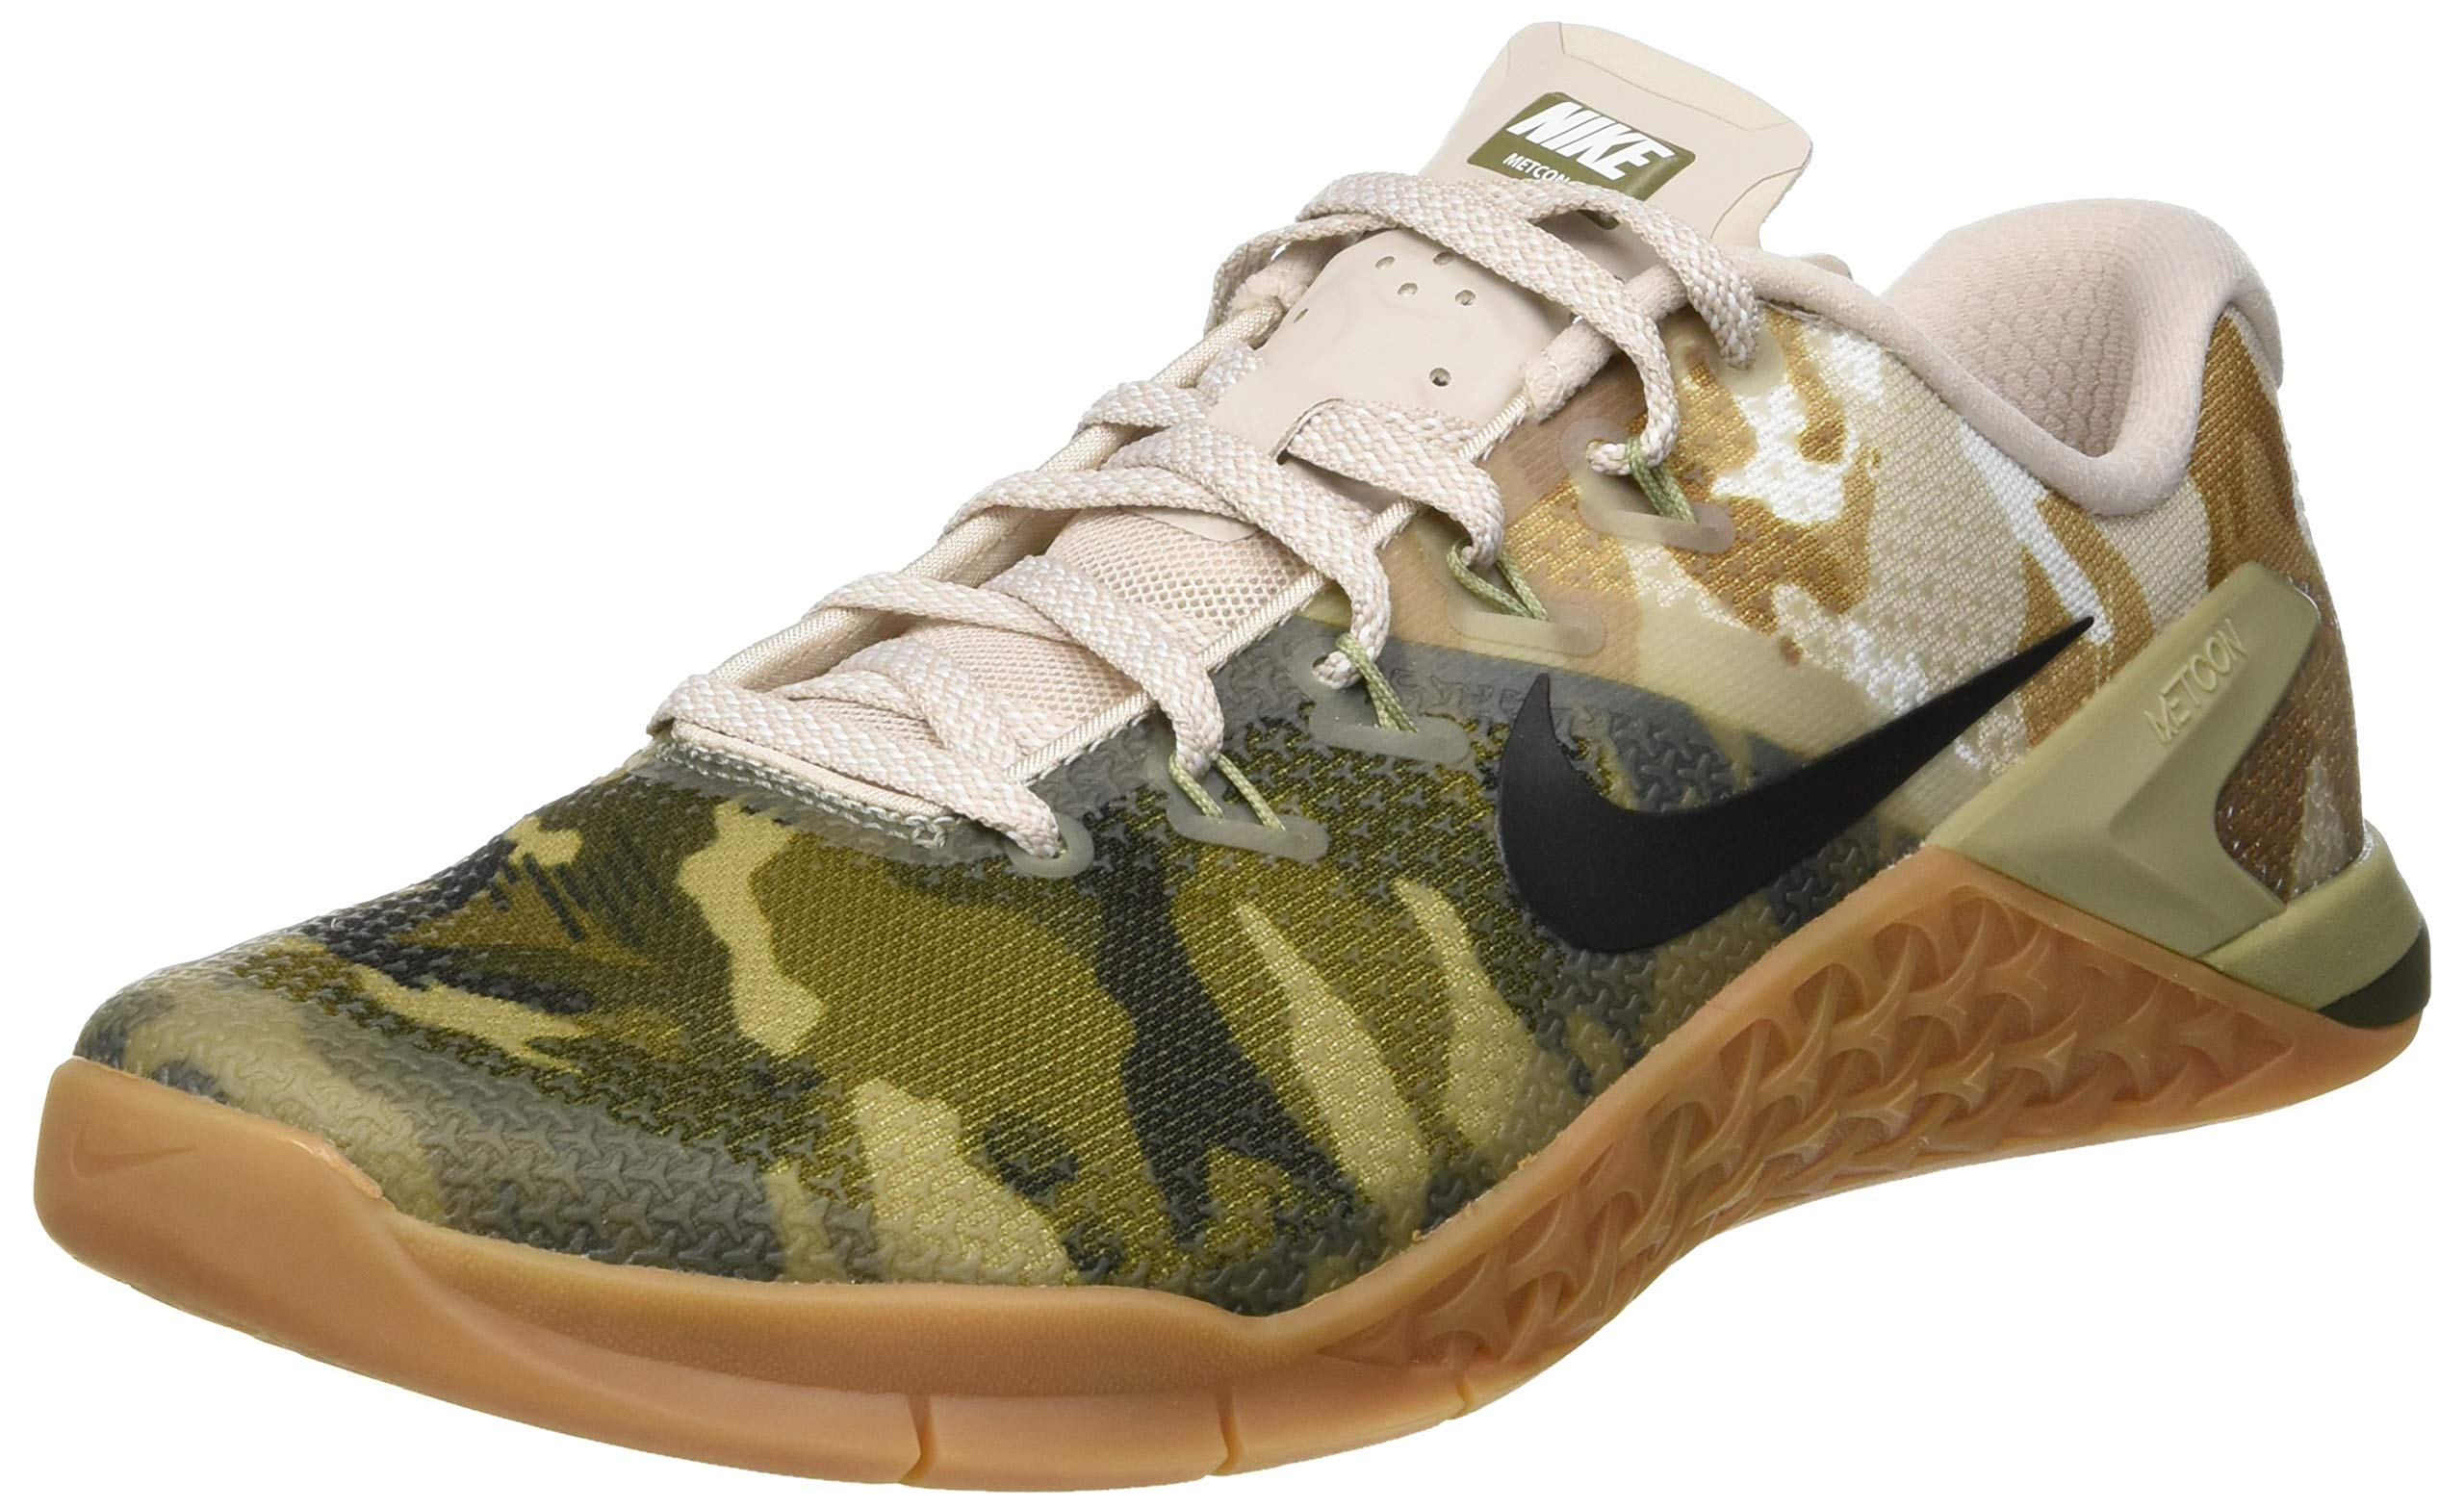 half off 8925c 80770 Galleon - Nike Mens Metcon 4 Training Shoes (9.5, GreyCamo)